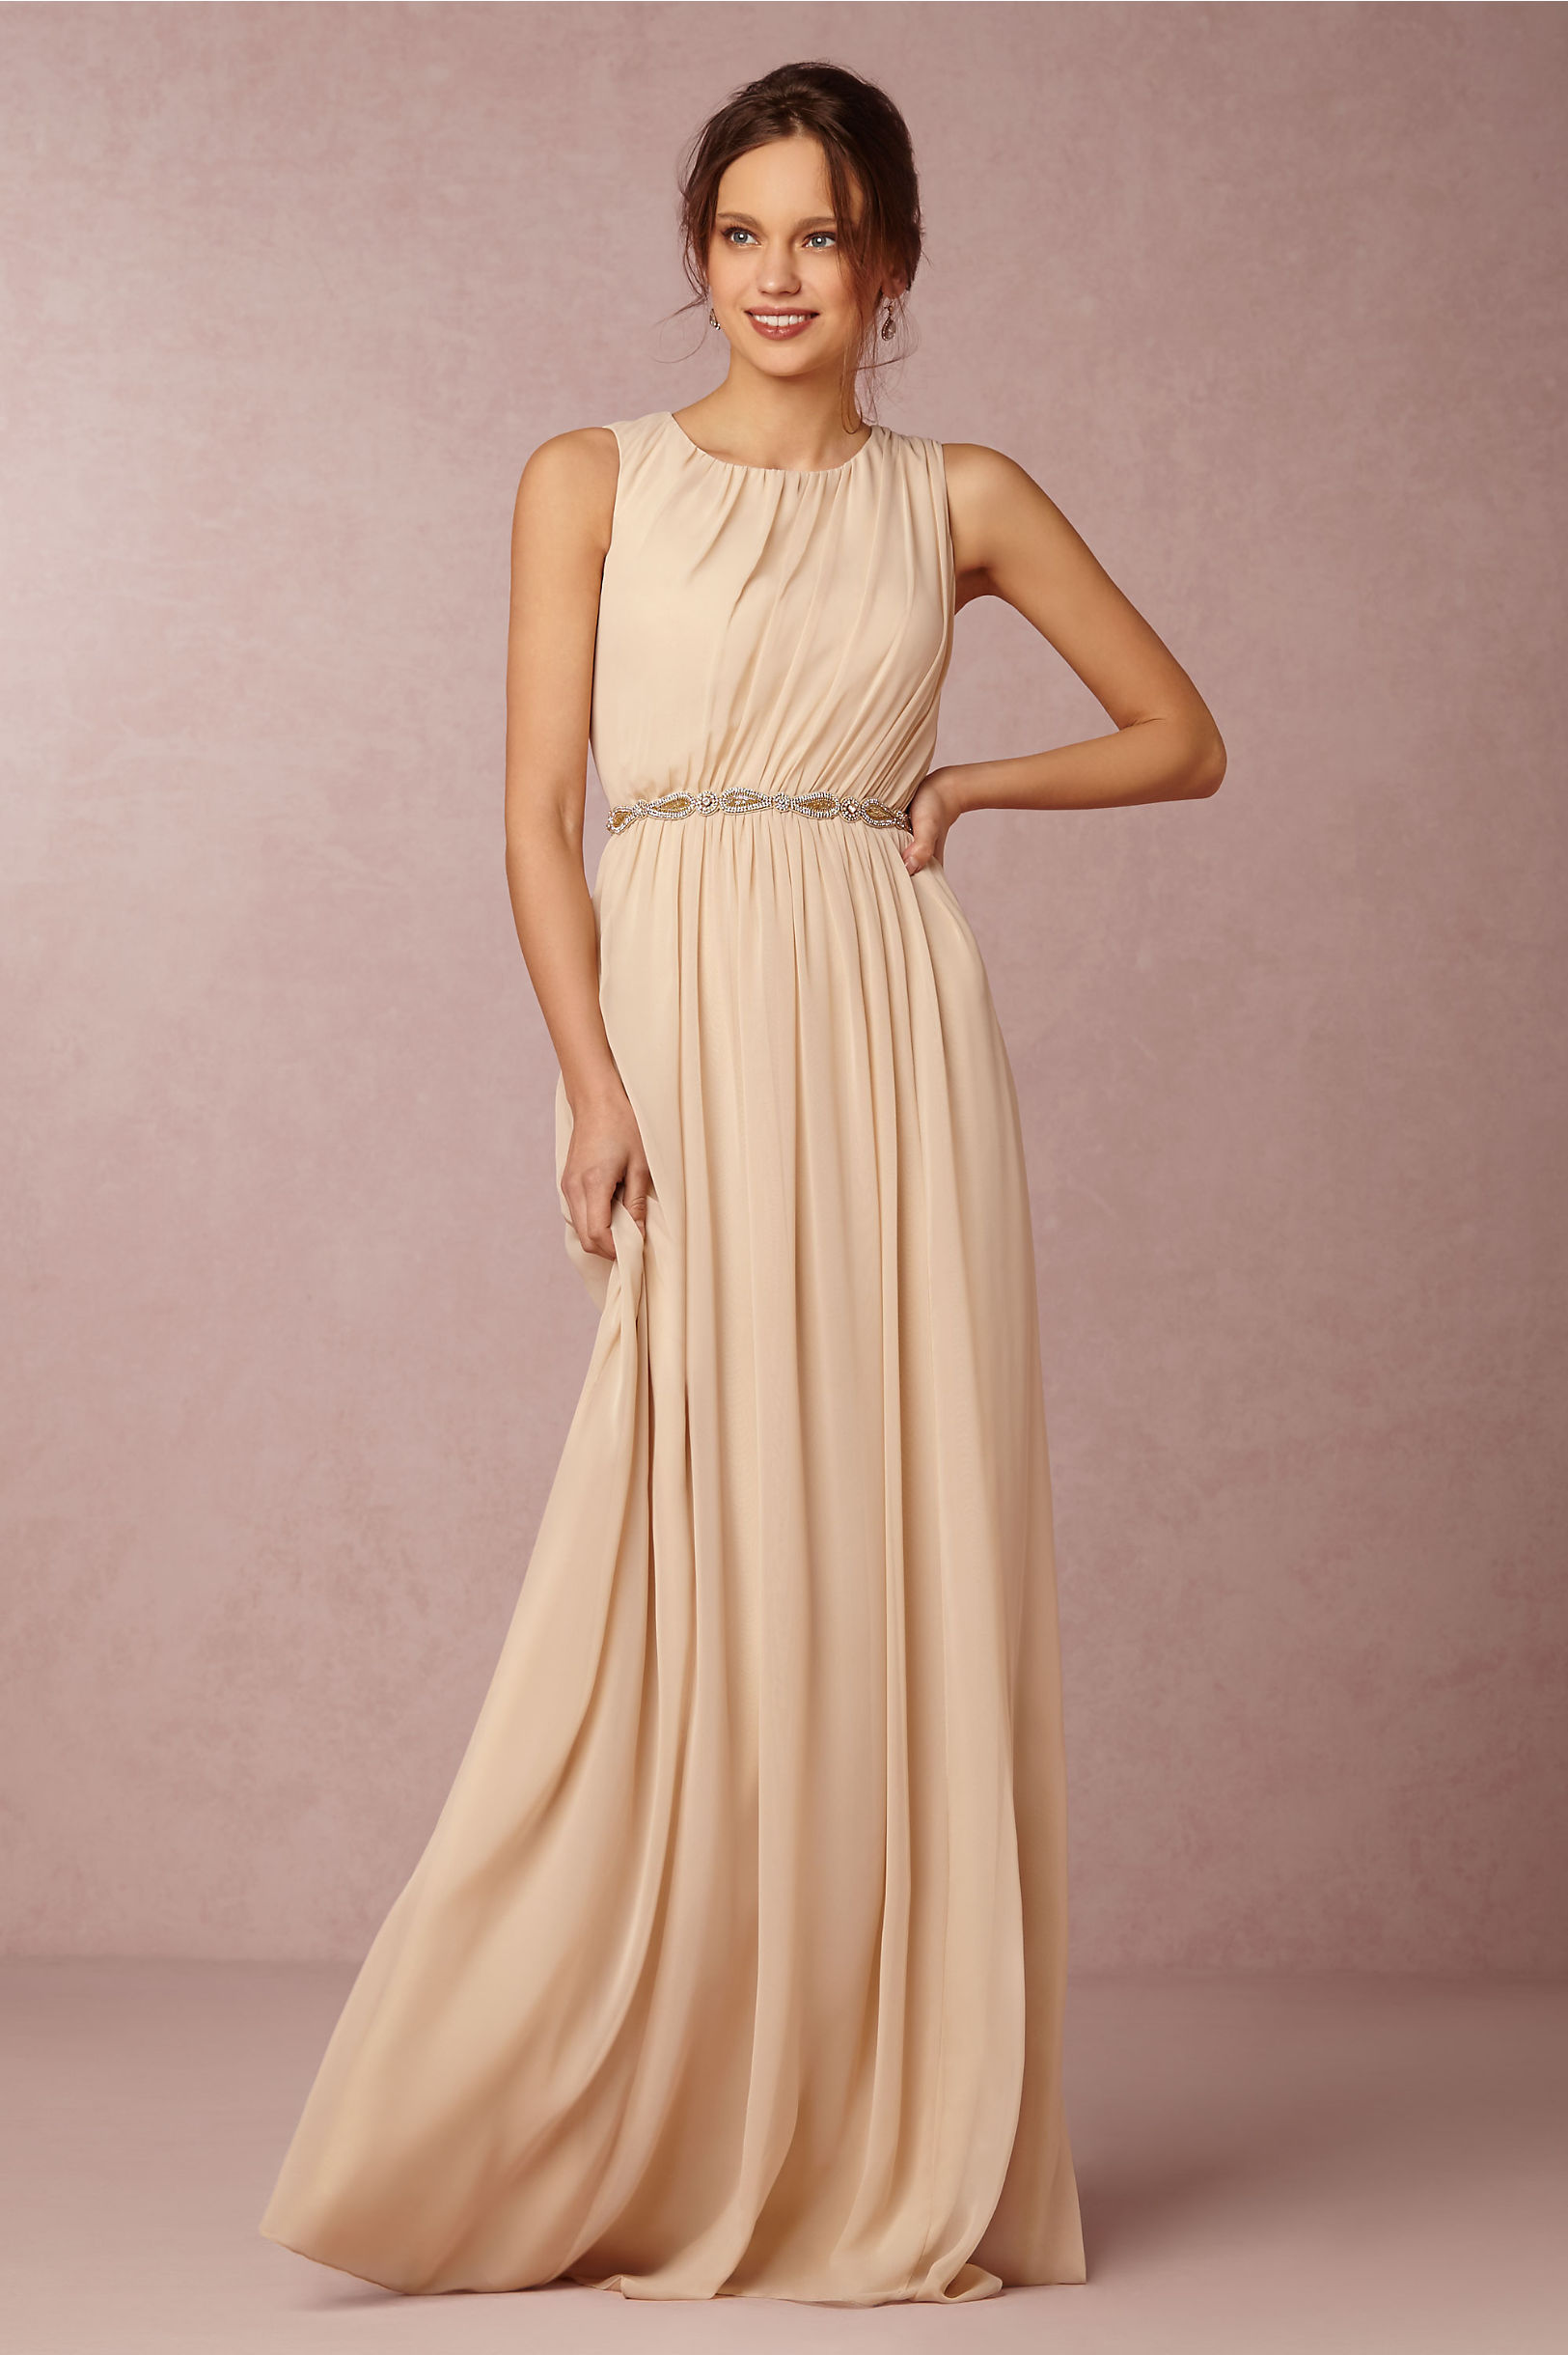 Eloise Dress in Bridesmaids & Bridal Party | BHLDN